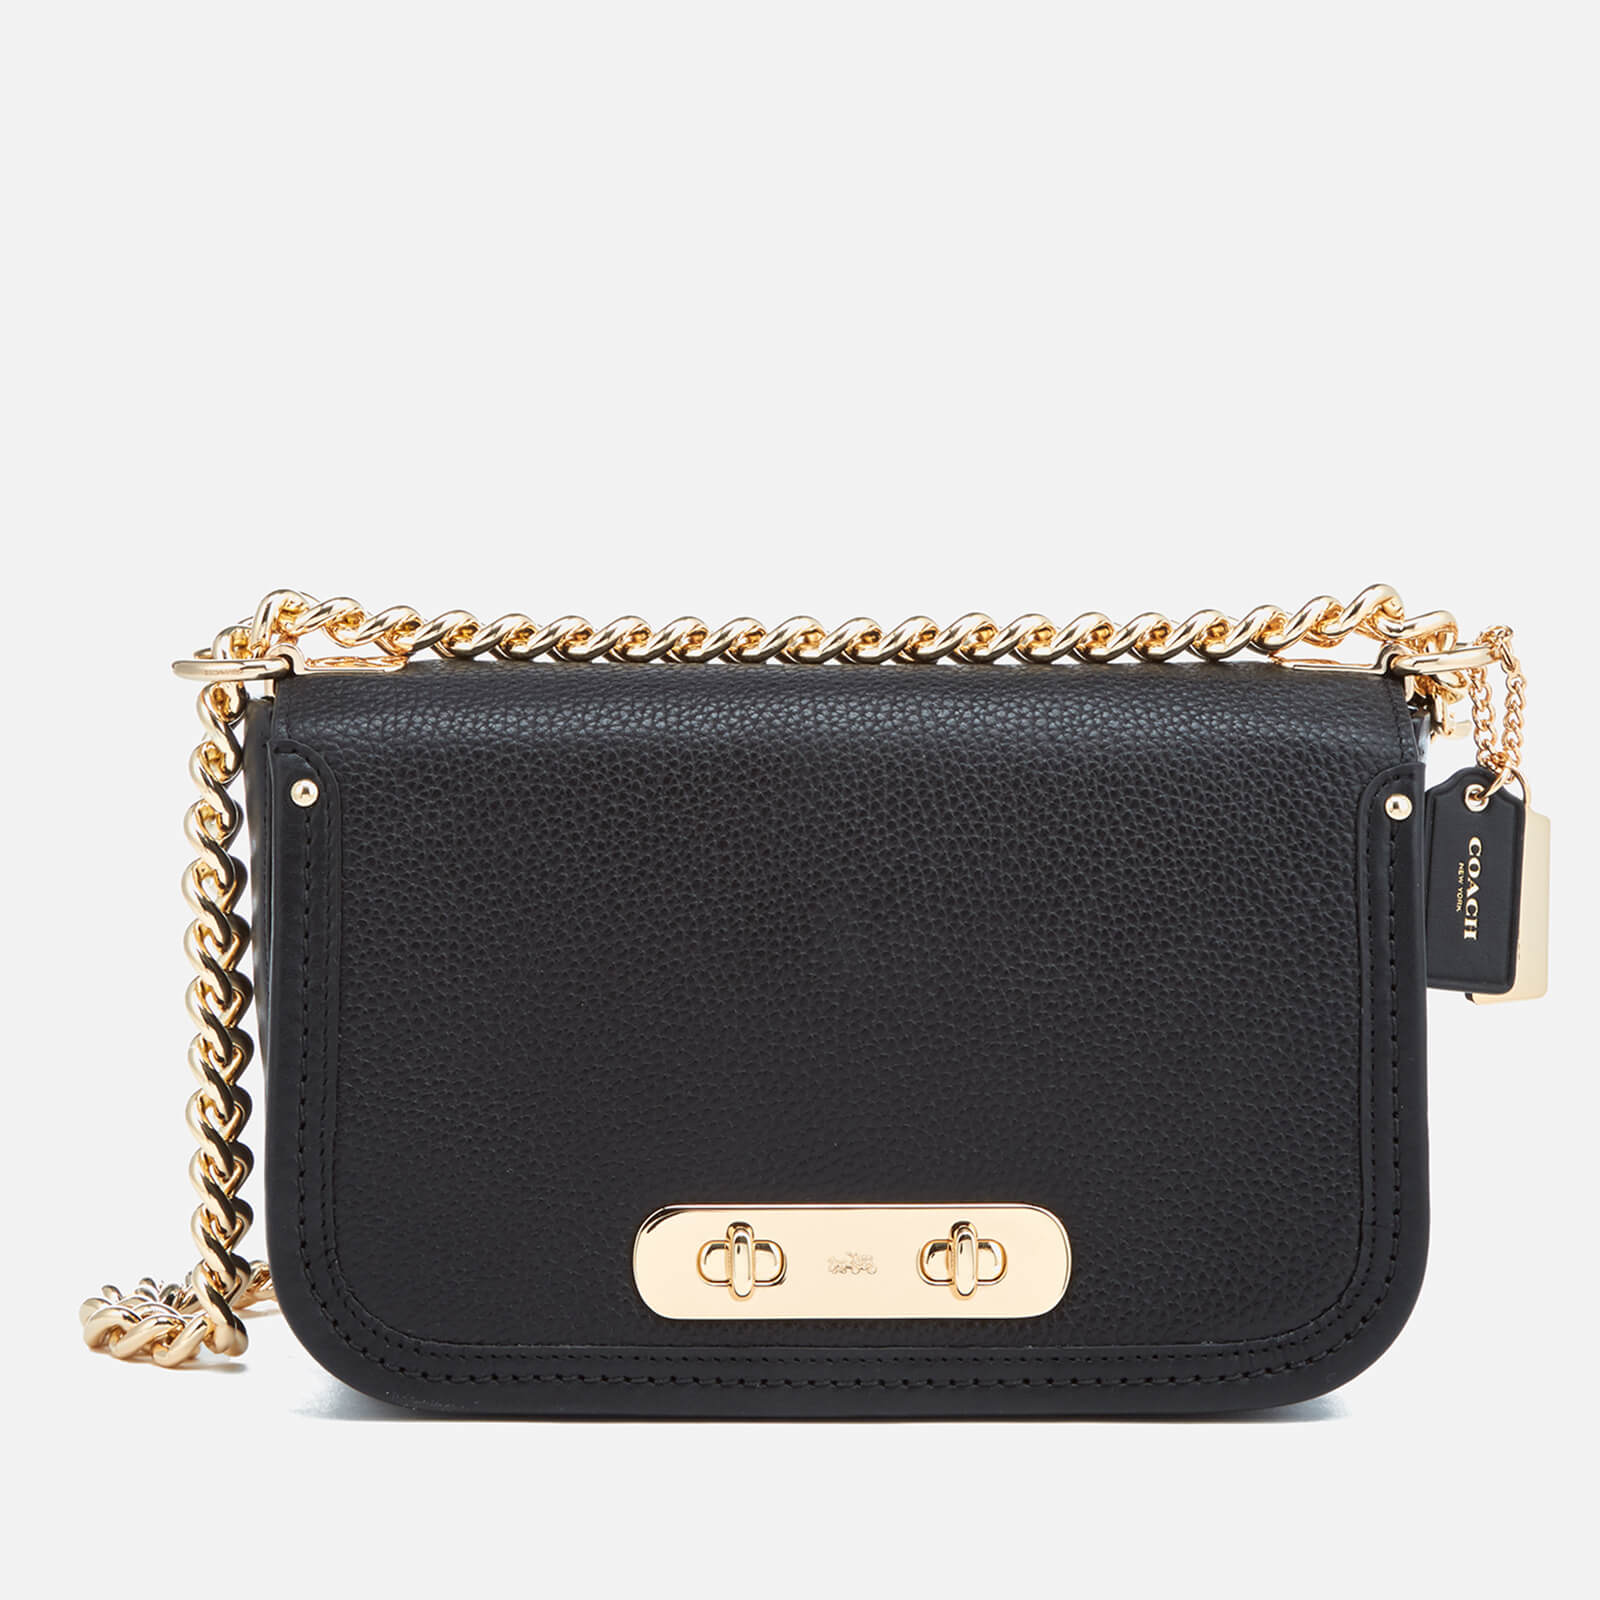 bae4ade35 Coach Women's Coach Swagger Shoulder Bag - Black - Free UK Delivery over £50